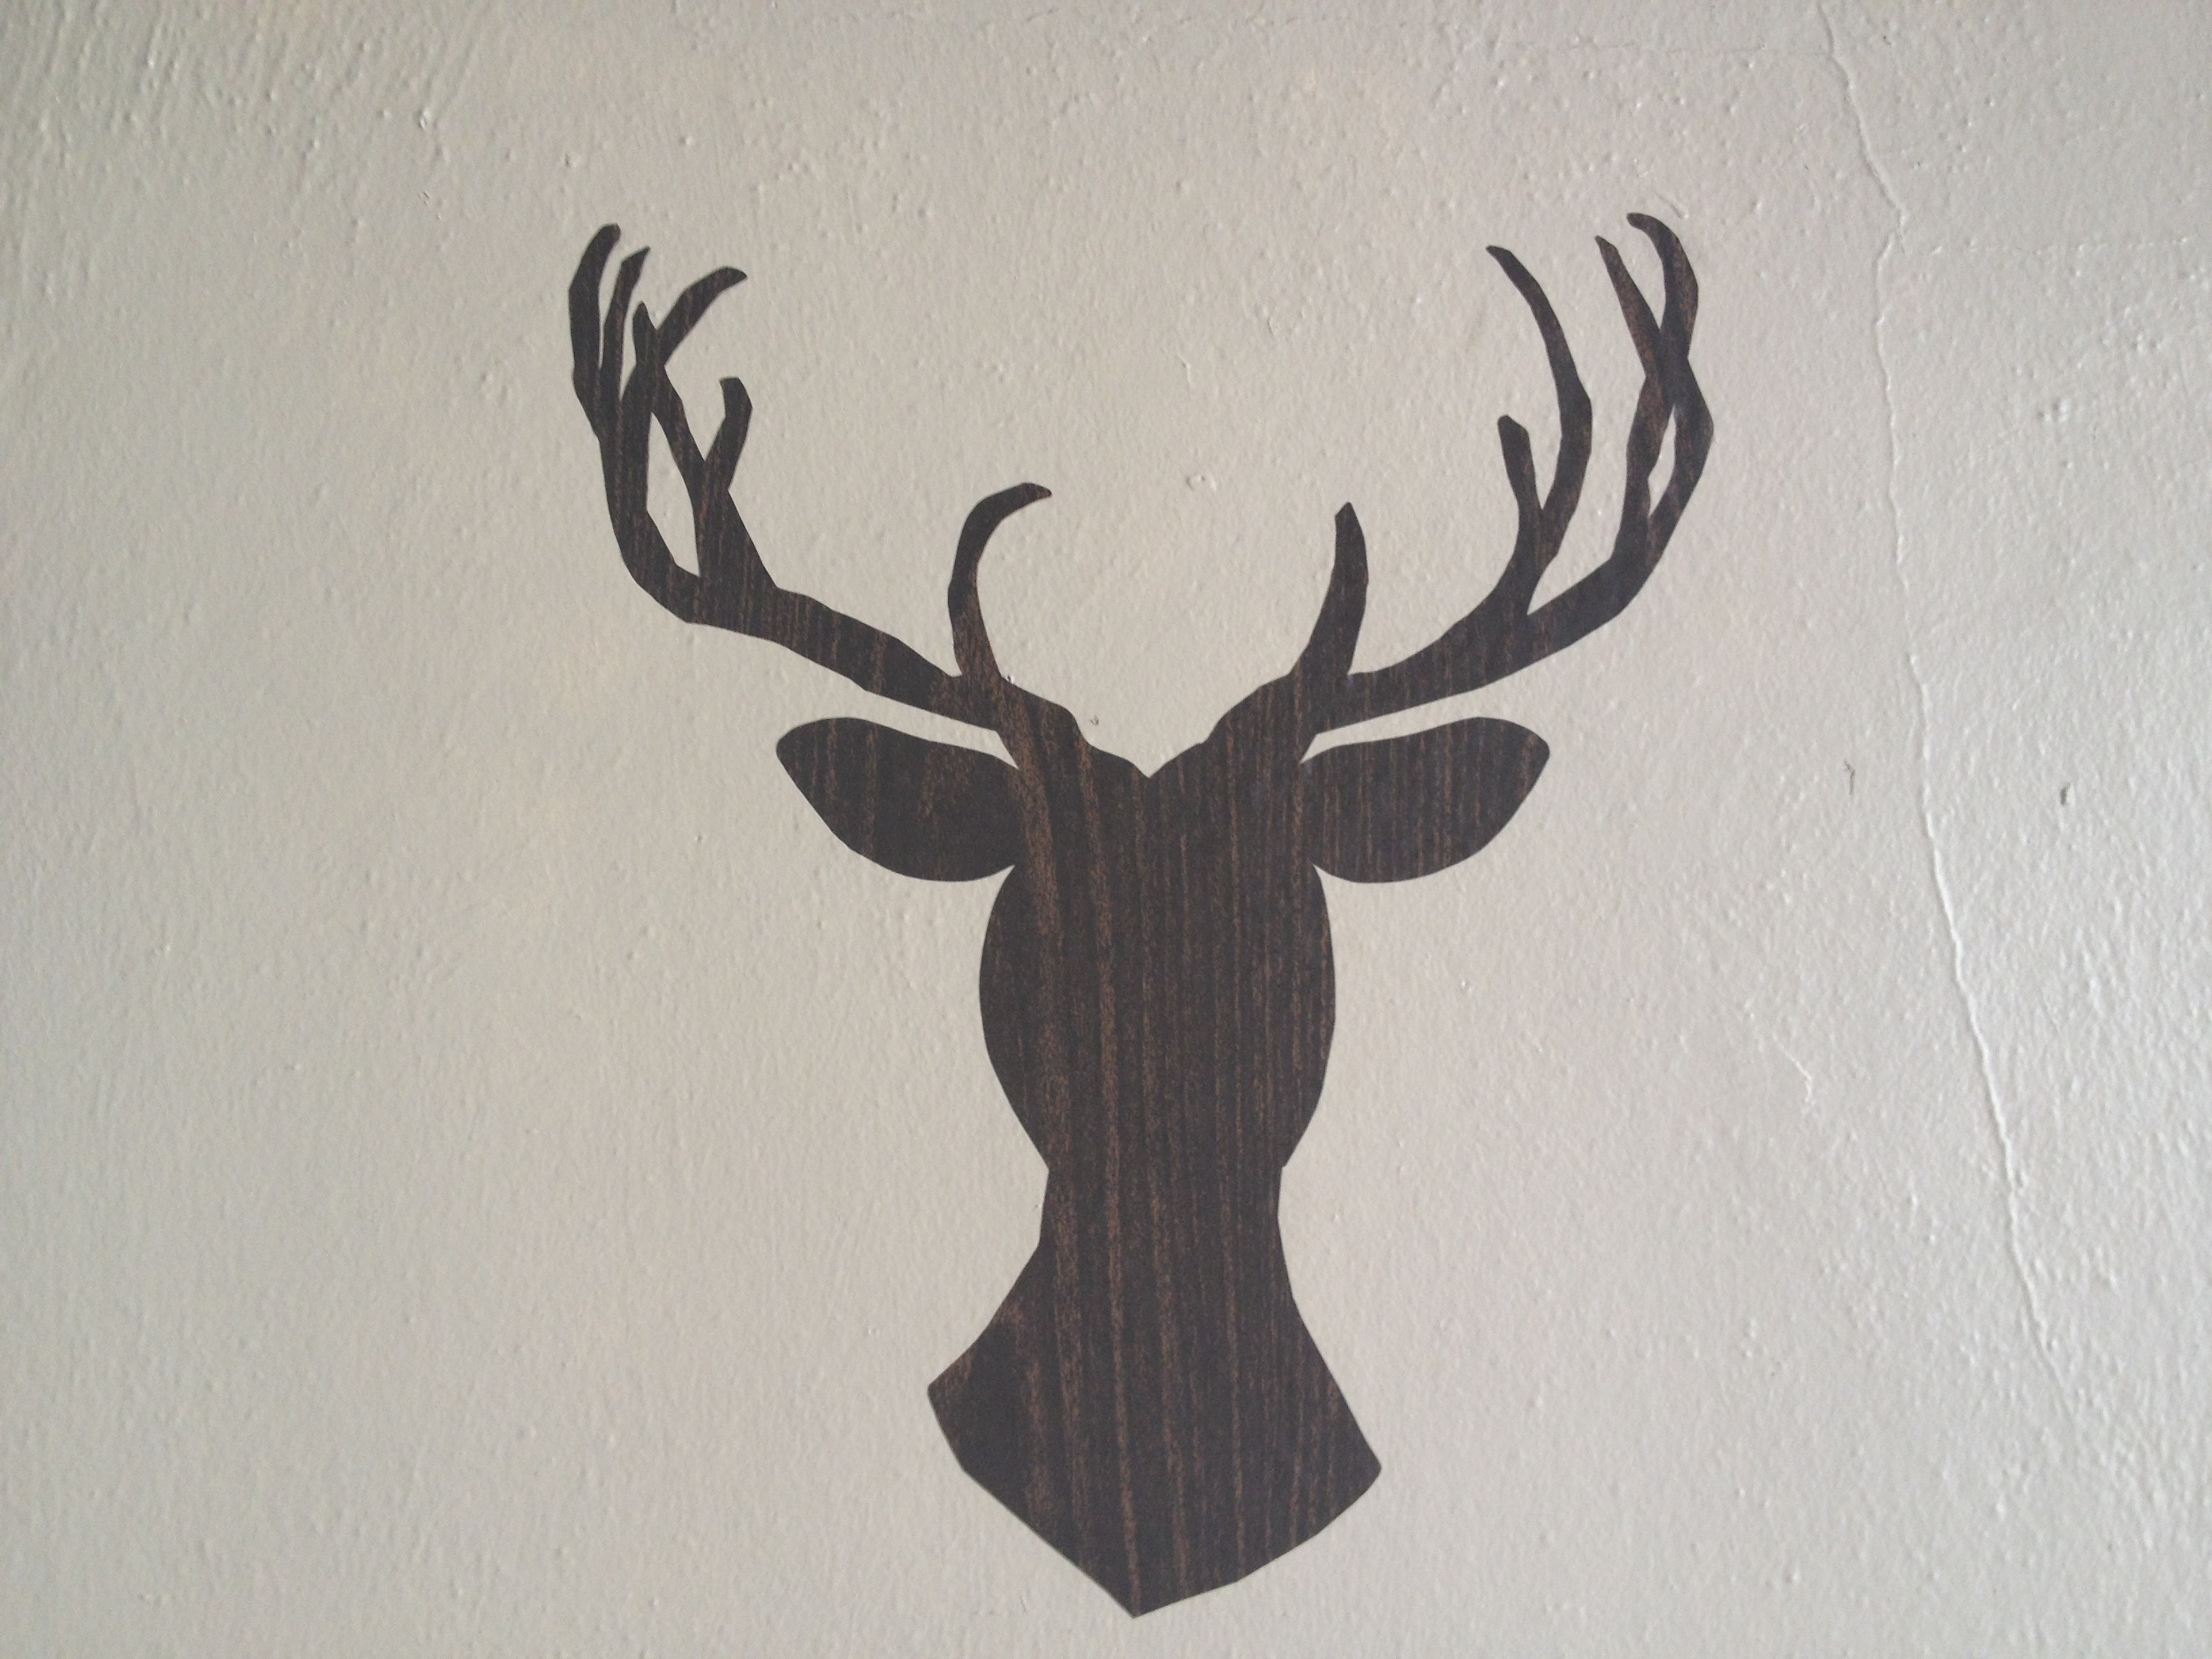 Diy contact paper deer decal zest it up if you have troubles at any step feel free to leave a comment and ill get back to you as soon as i can arubaitofo Images